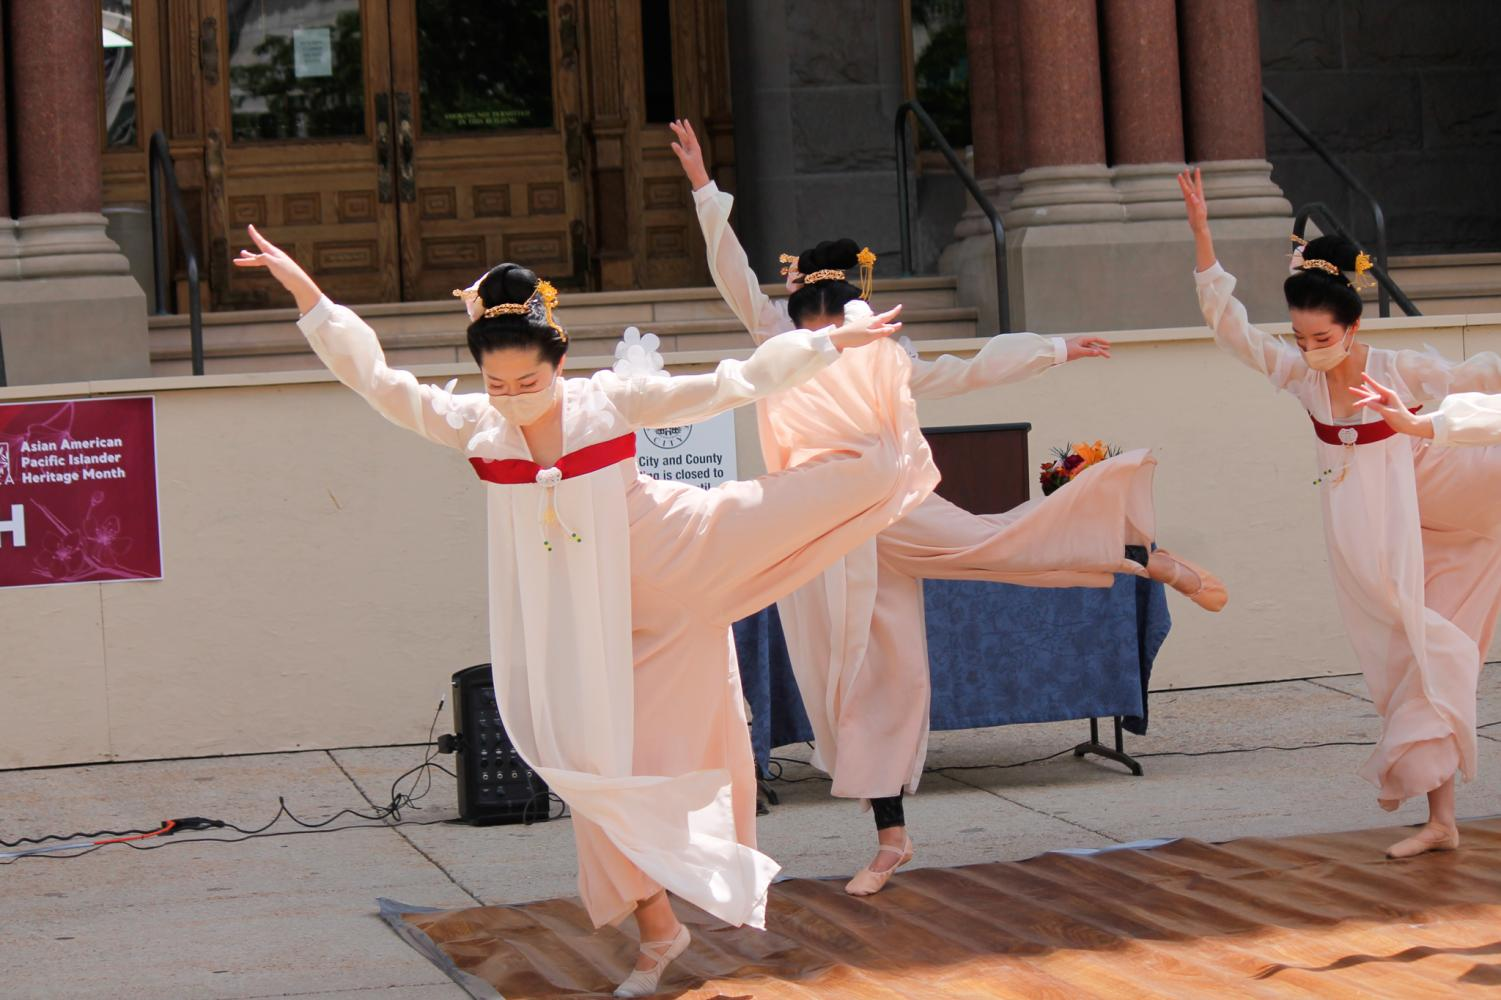 SLC+Ballet+Classical+Chinese+dancers+perform+at+the+AAPI+Heritage+Month+Celebration+Rally+at+Washington+Square+Park+in+Salt+Lake+City+on+May+22%2C+2021.+%28Photo+by+Natalie+Colby+%7C+Daily+Utah+Chronicle%29